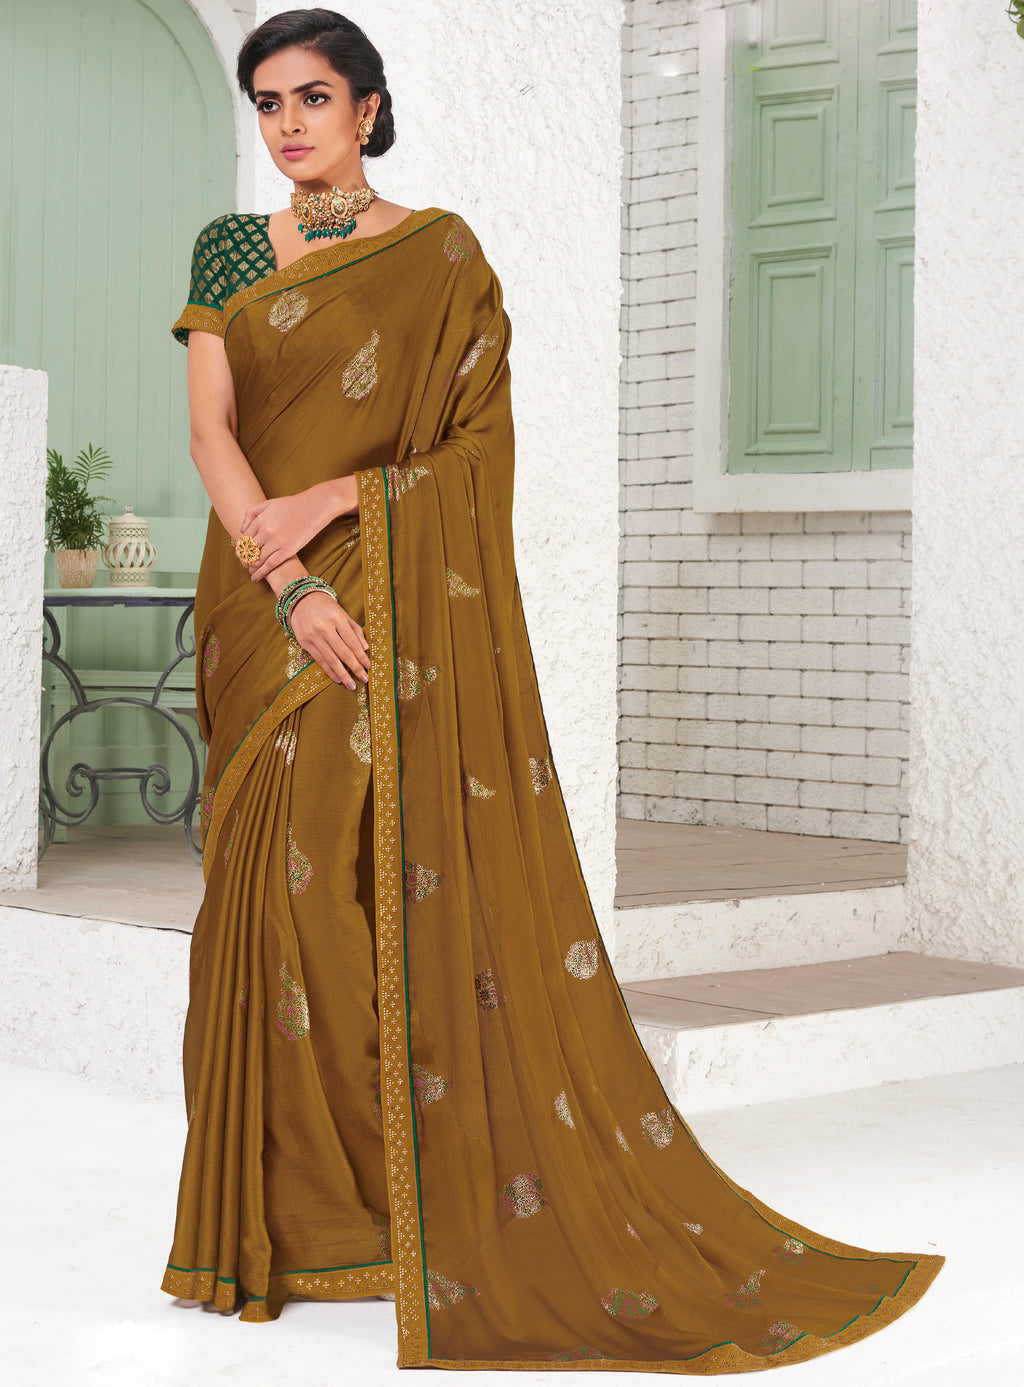 Mustard Yellow Color Chiffon Party Wear Sarees NYF-9698